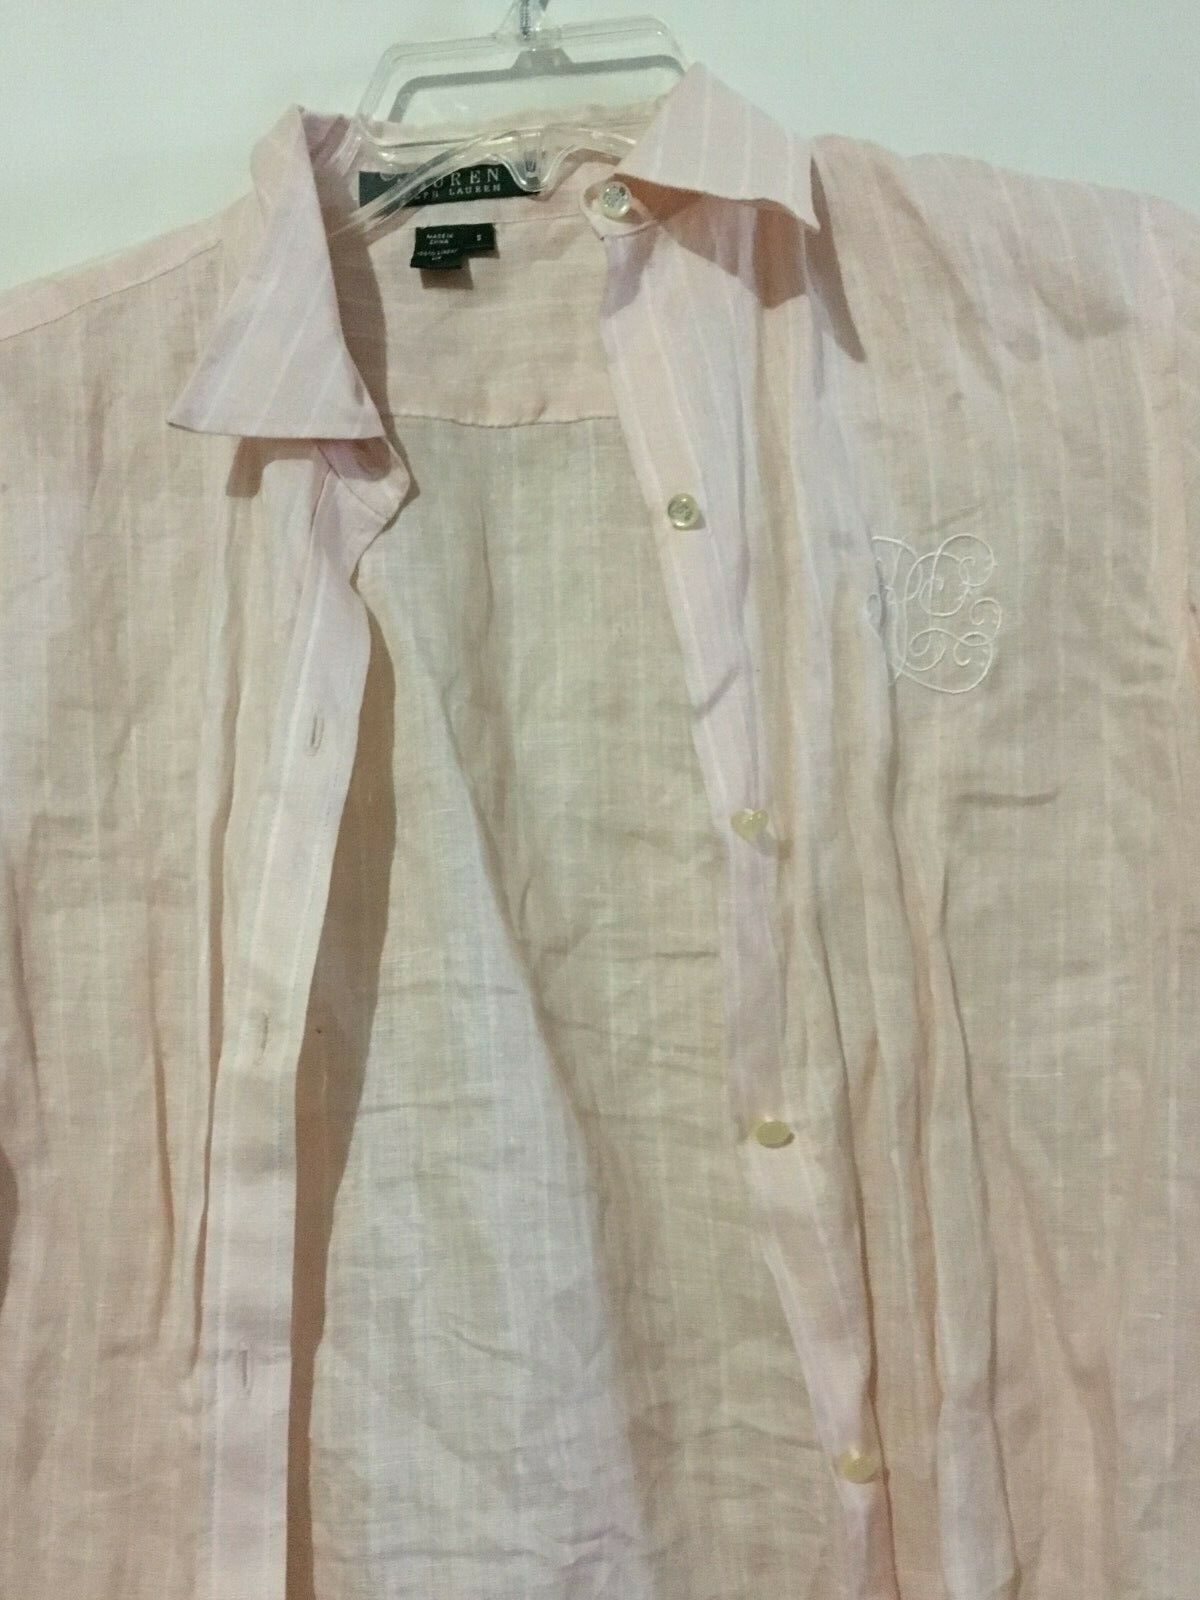 Ralph Lauren bluesh Pink Stripe 100% Linen Size S Shirt Top Blouse Women Stylish